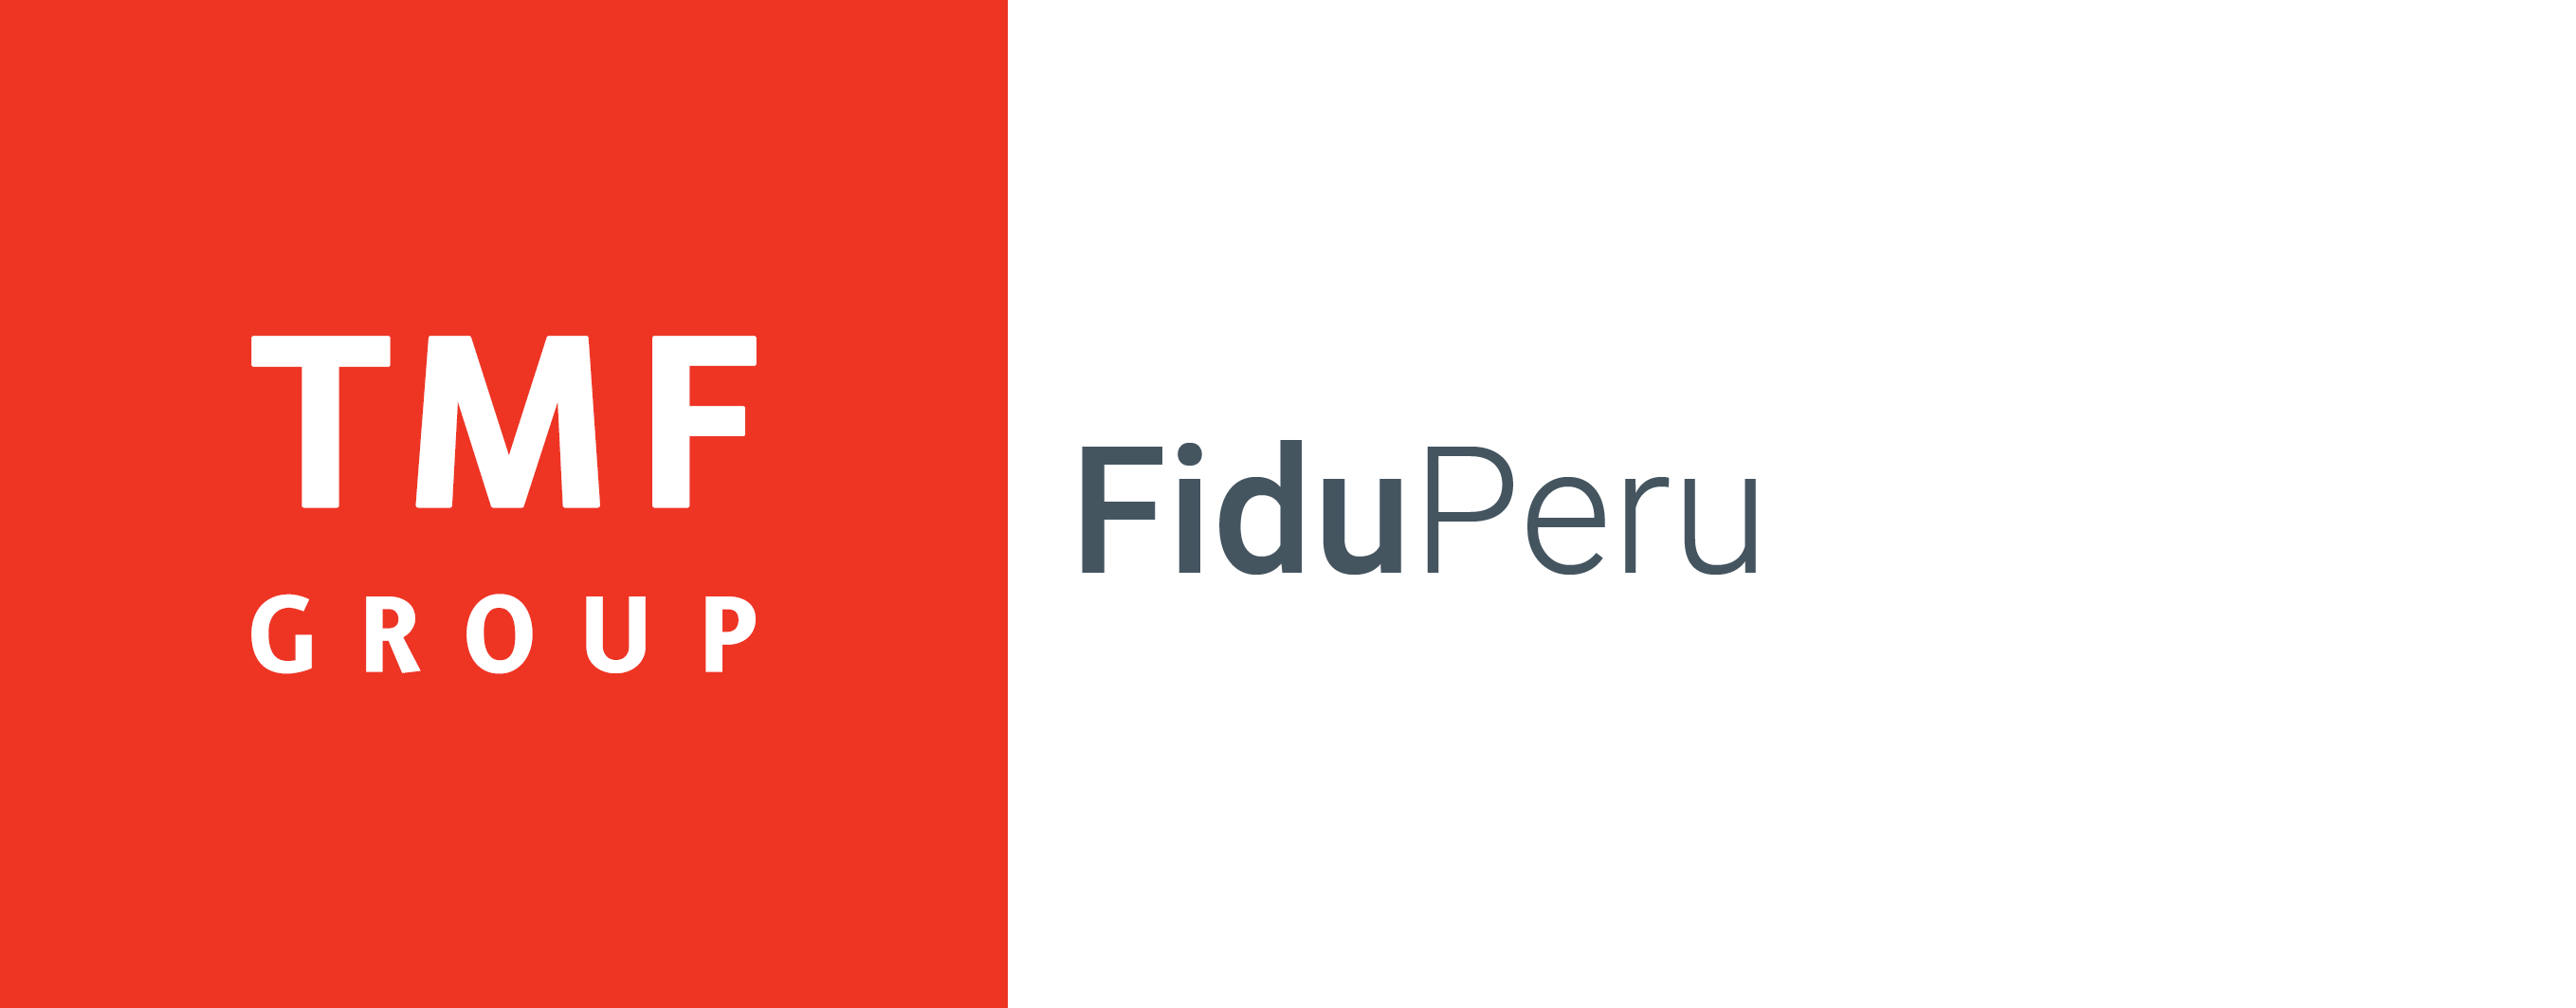 TMF Group and FiduPeru logo